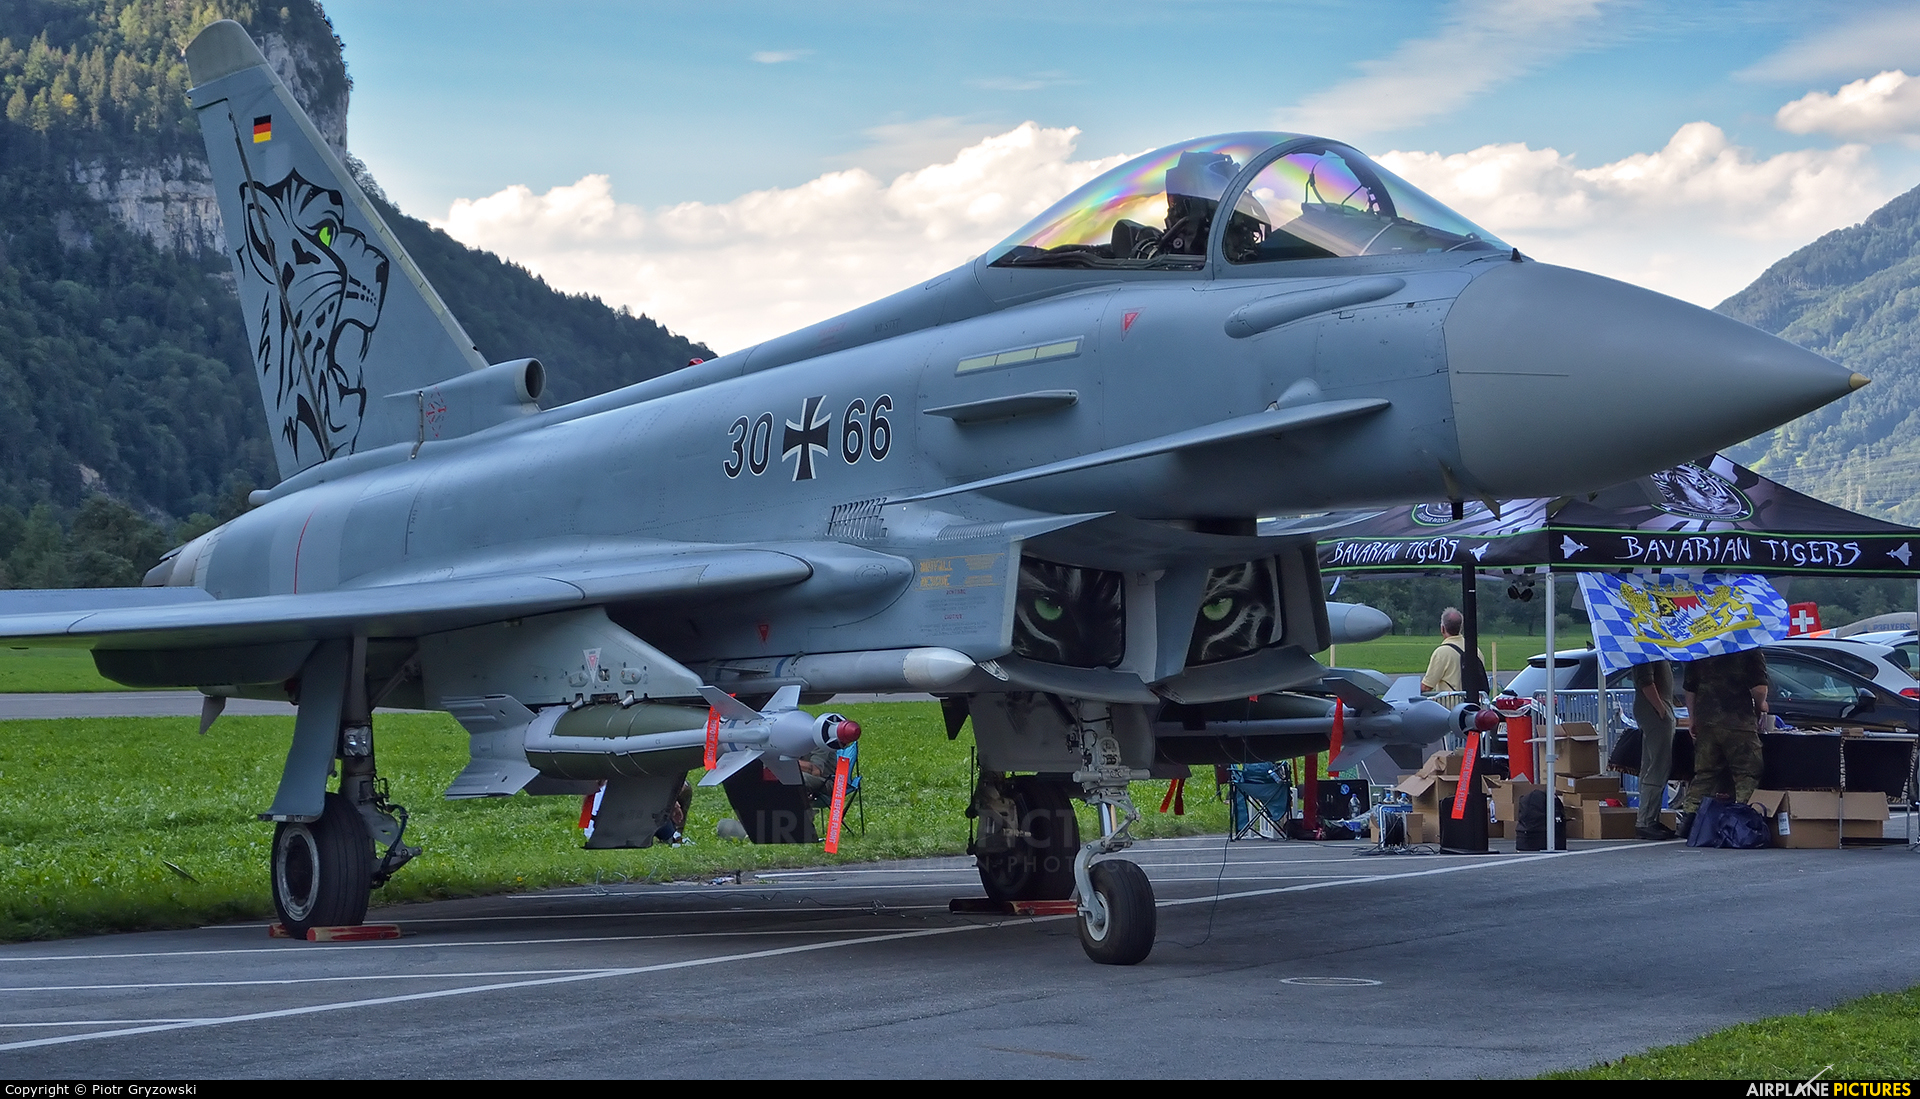 Germany - Air Force 30+66 aircraft at Mollis